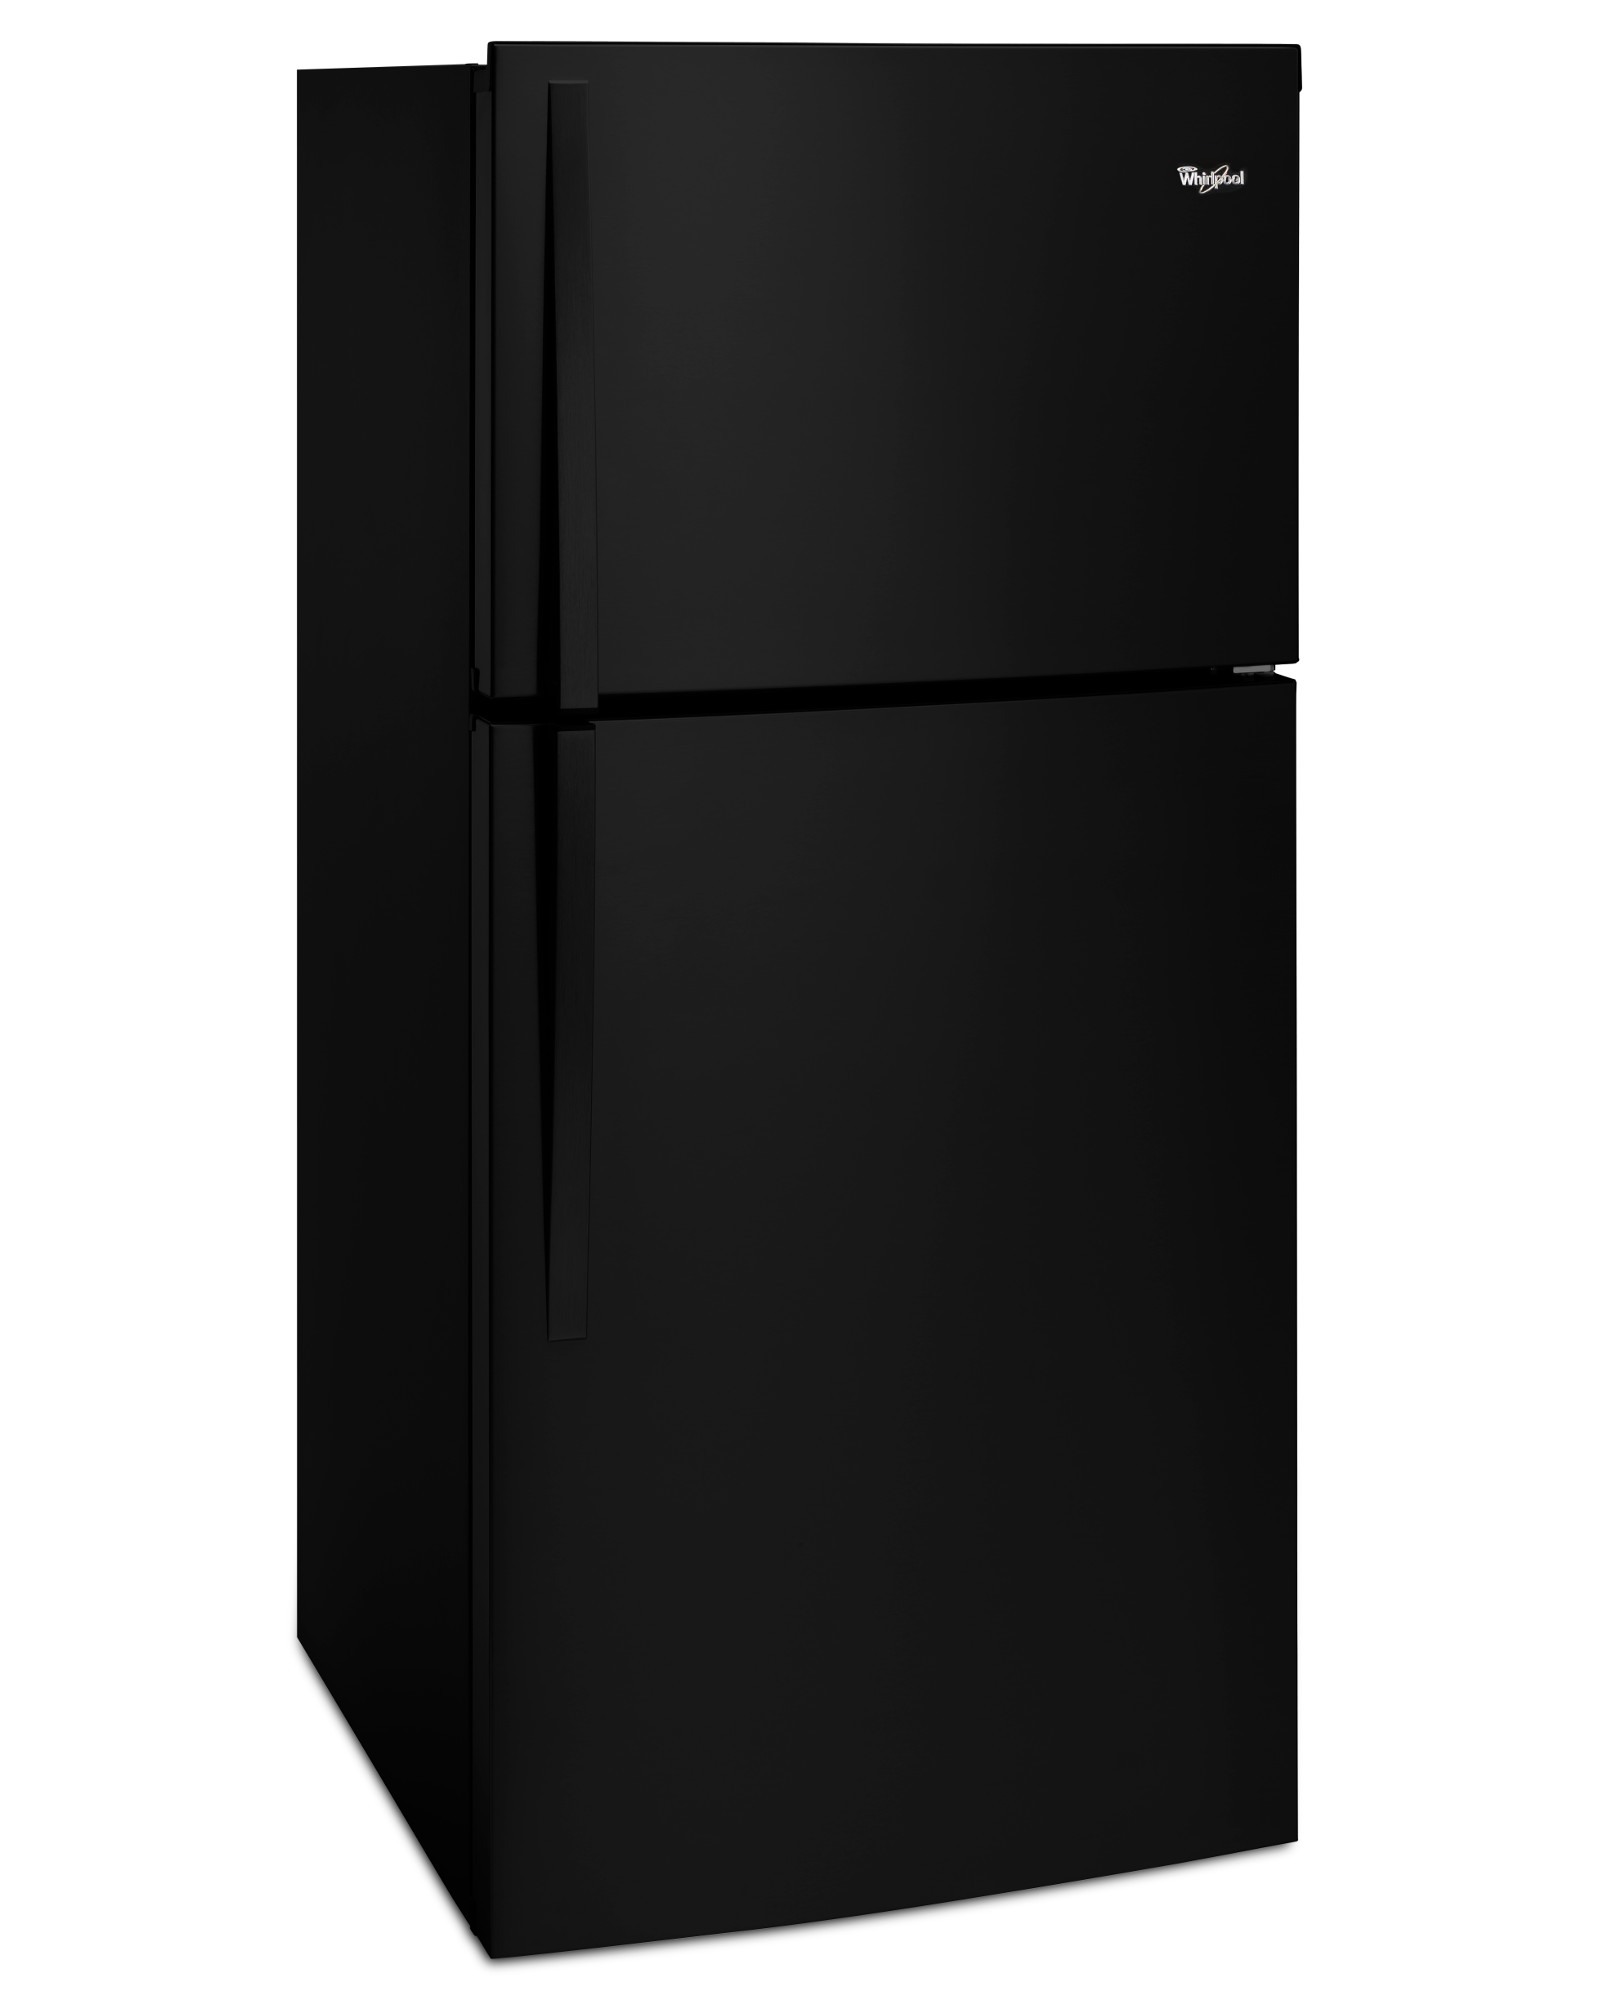 Whirlpool WRT549SZDB 19 cu. ft. Top Freezer Refrigerator - Black